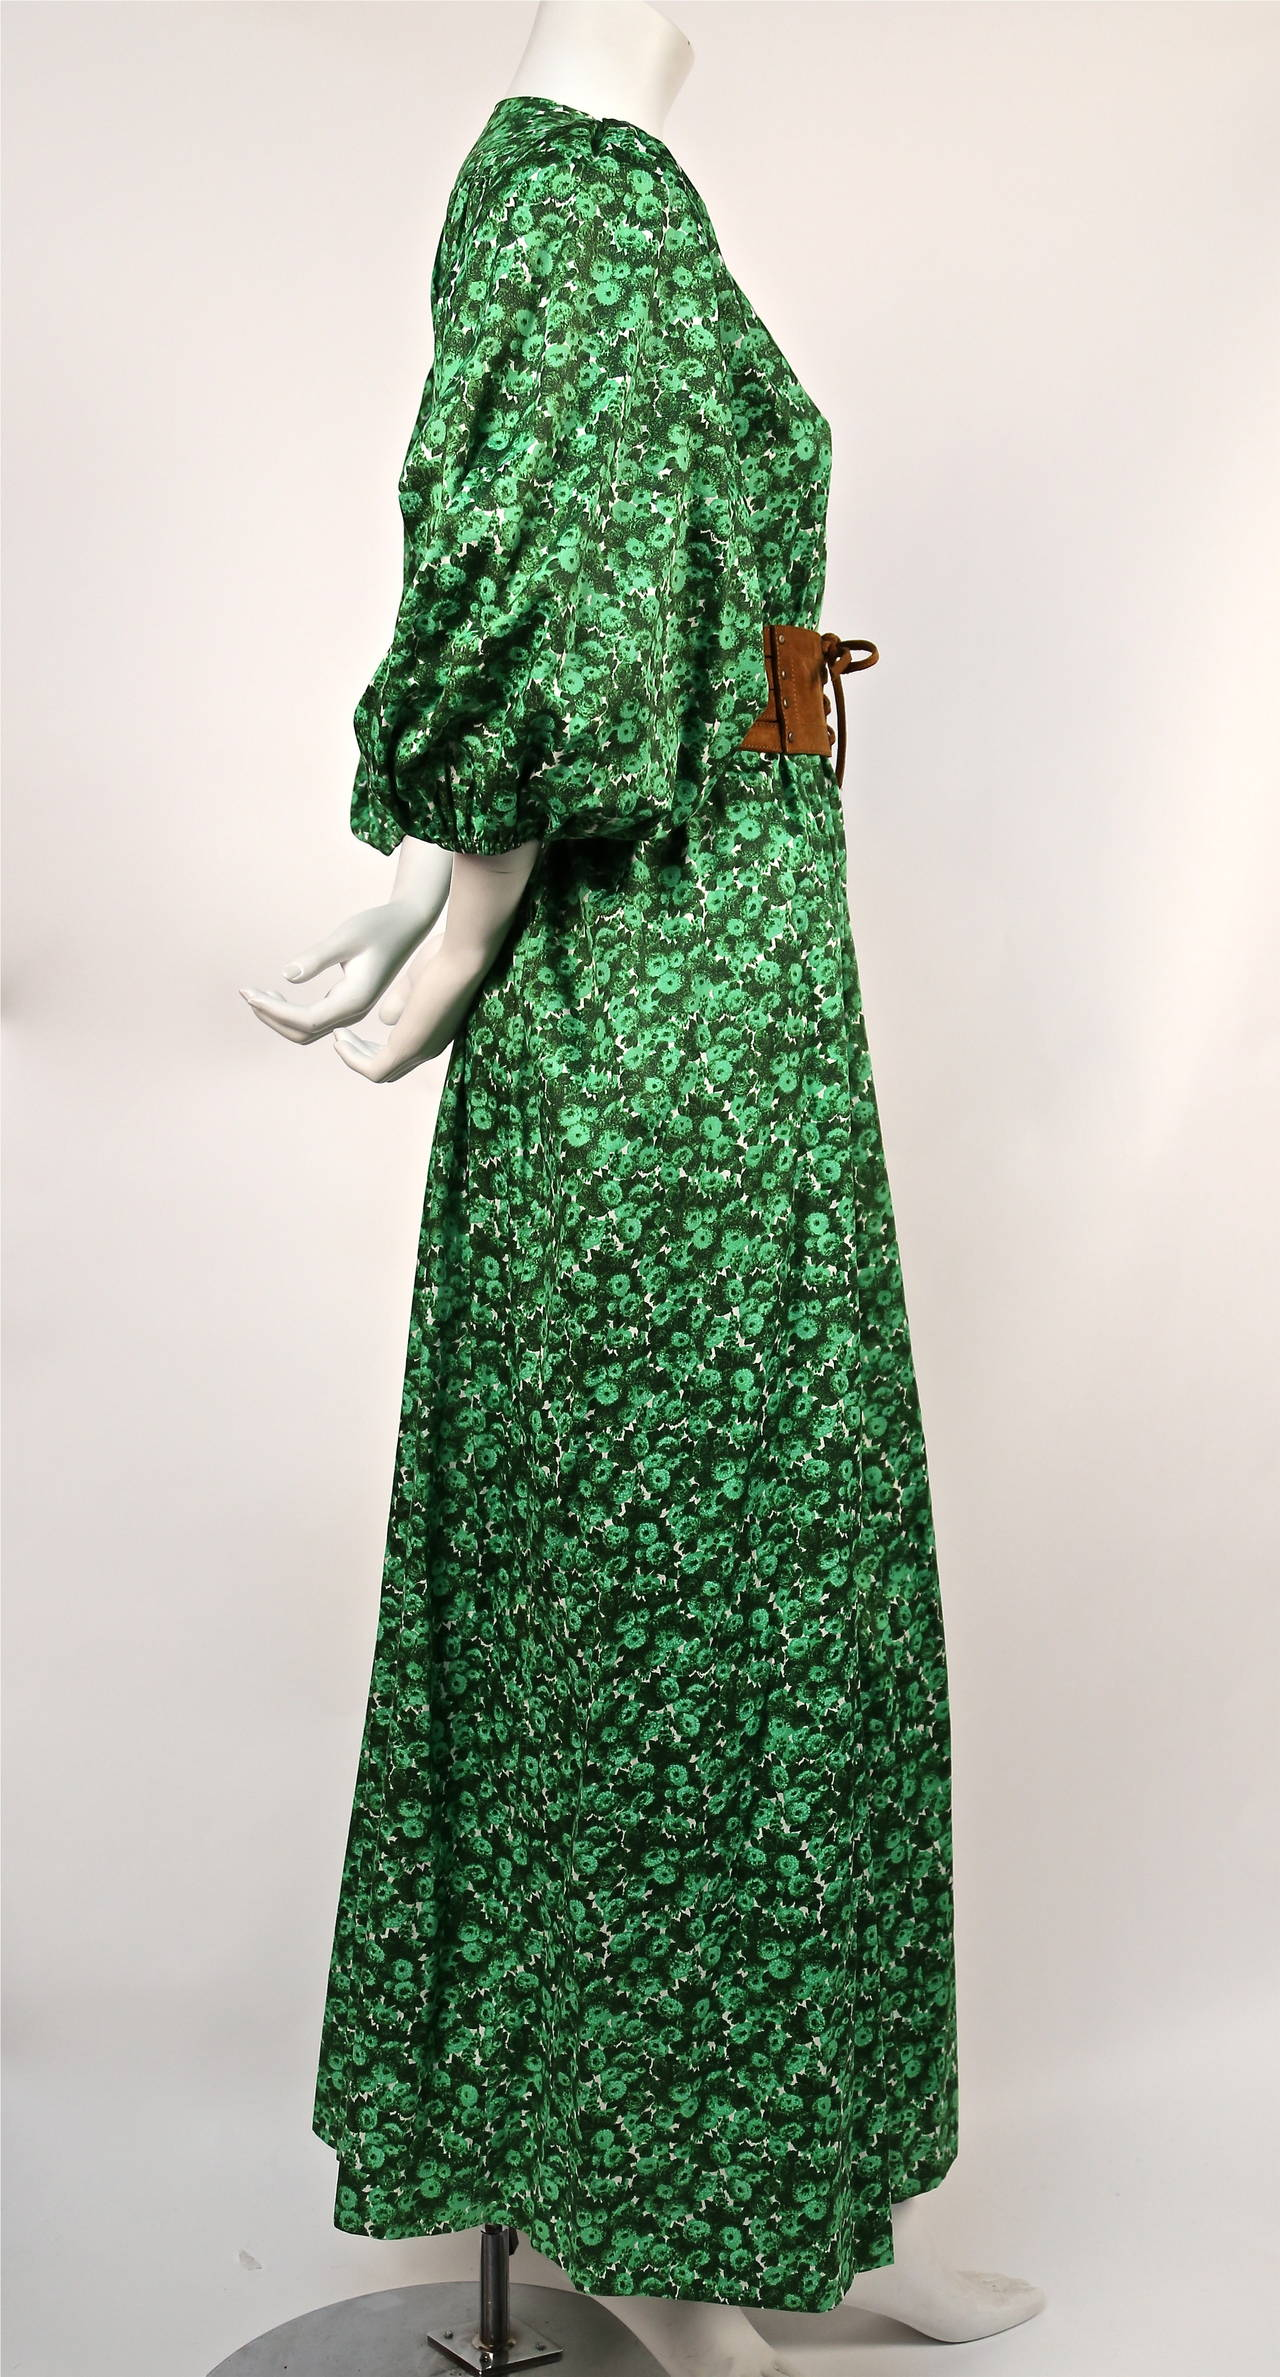 1970's YVES SAINT LAURENT green floral cotton dress with deep V neckline 3